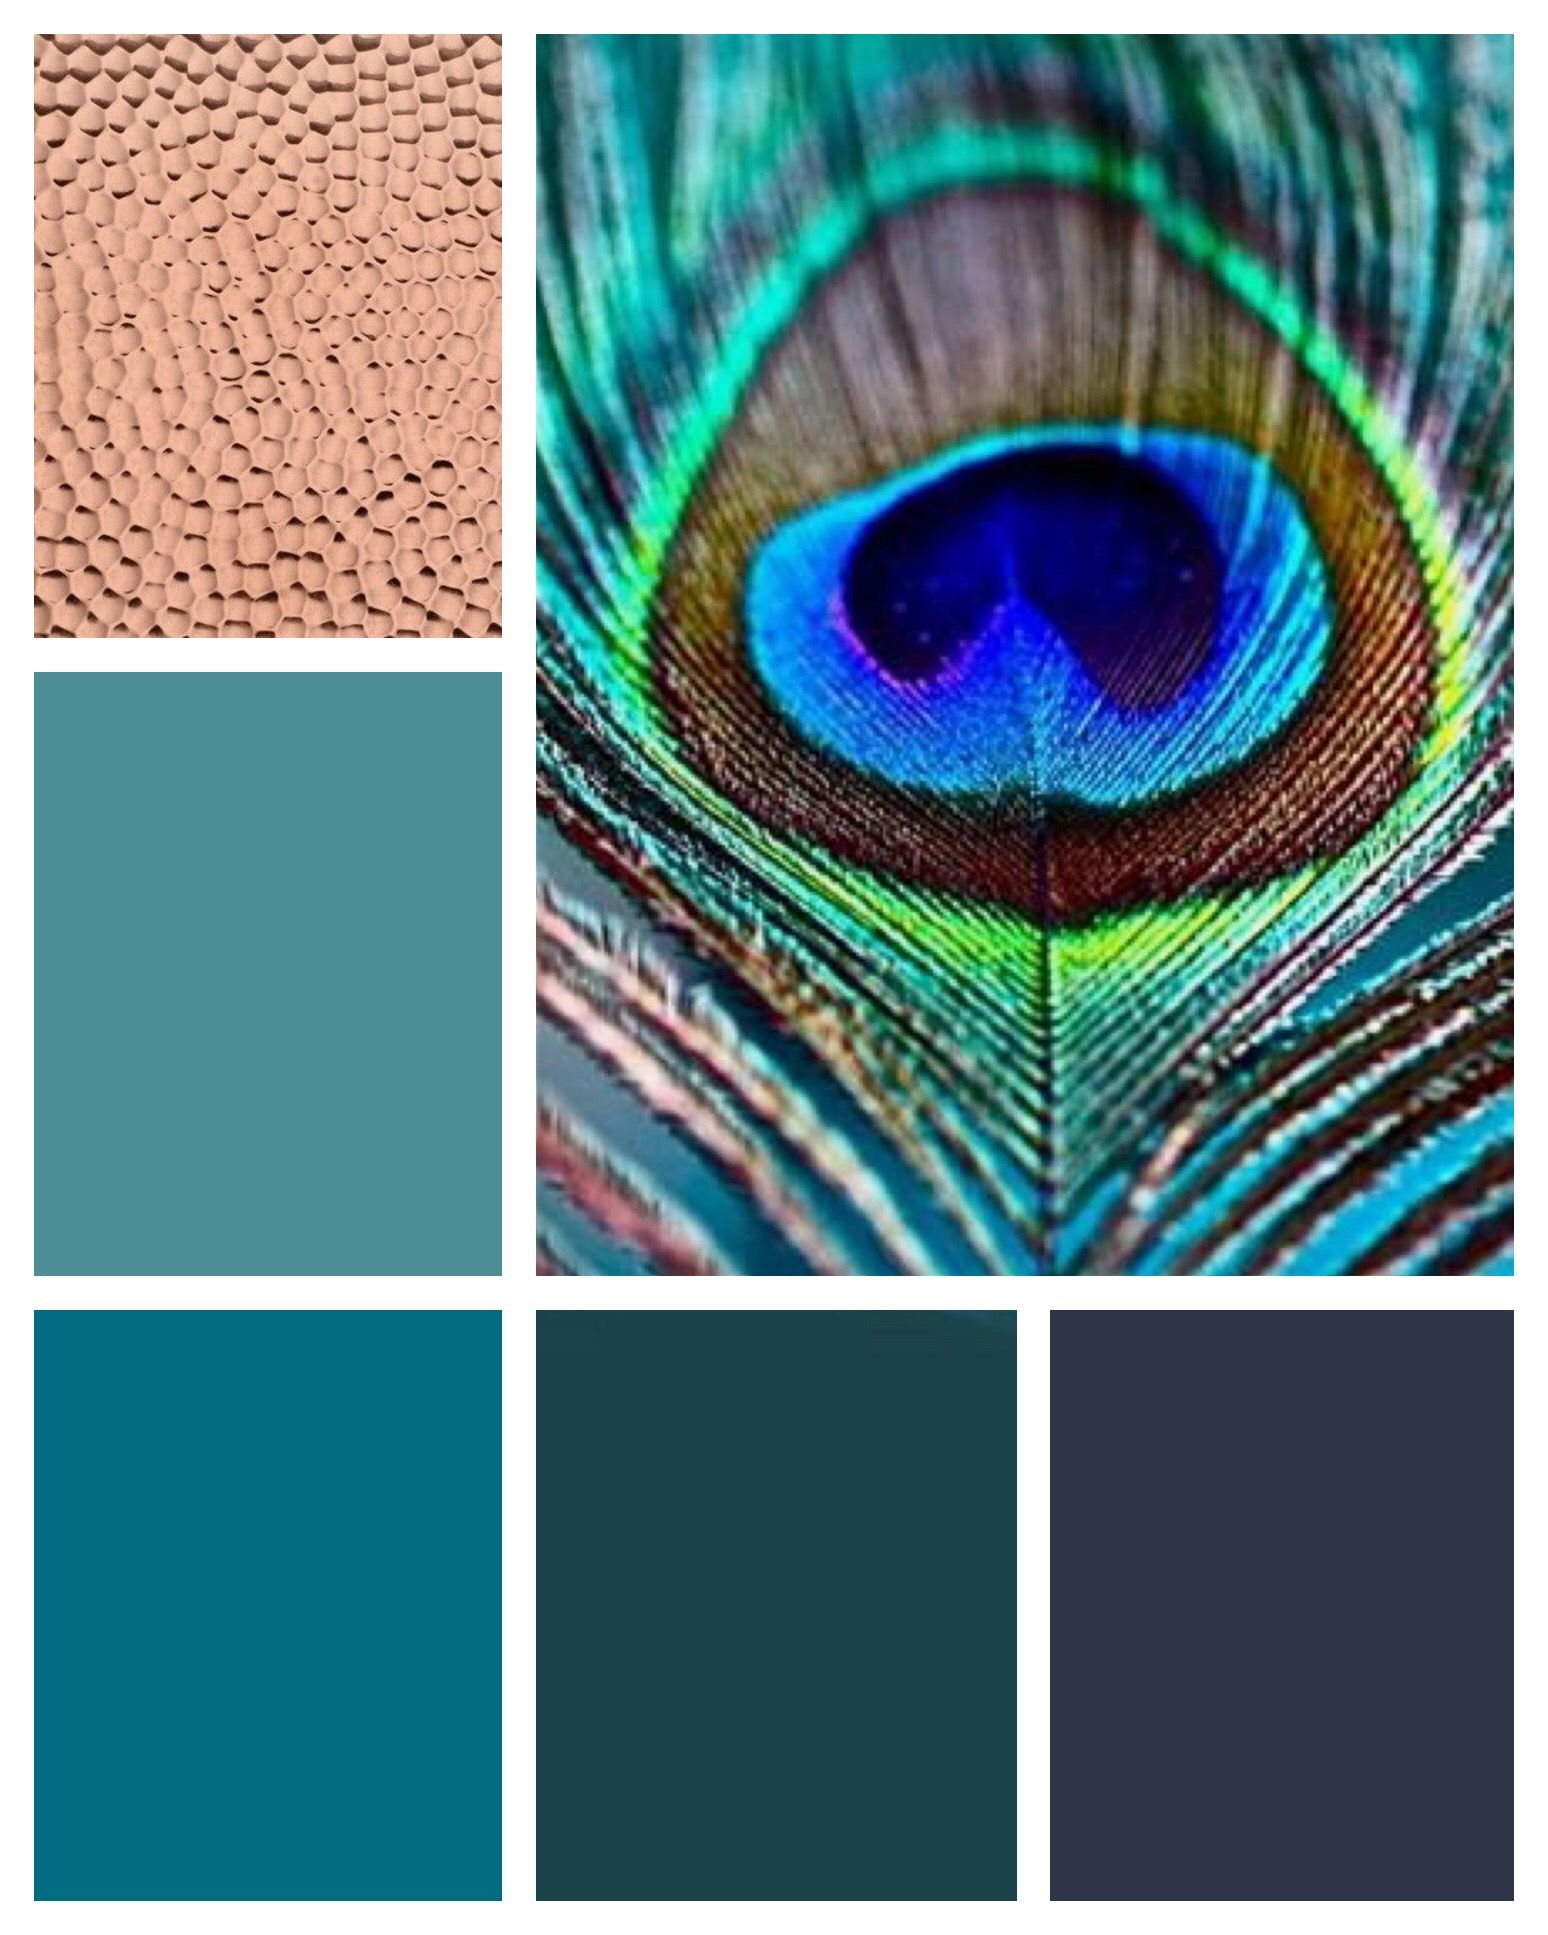 The Color Palette Will Include Navy, Sea Green, Teal